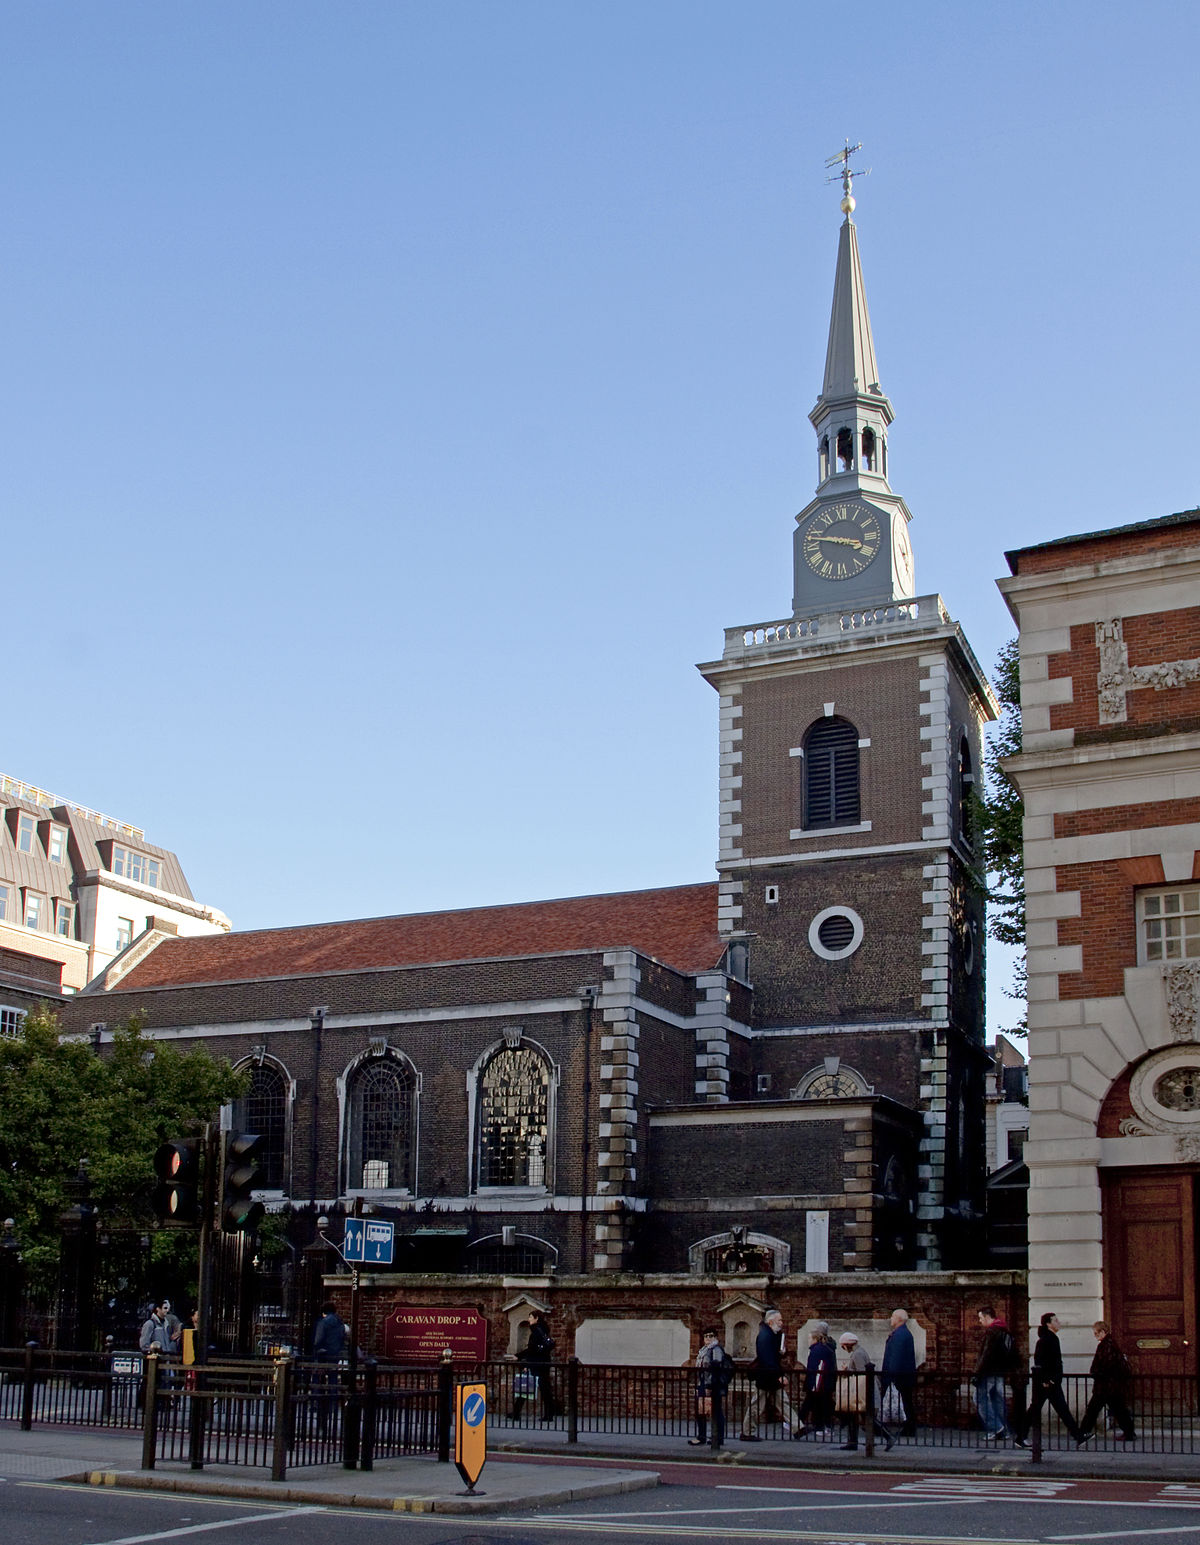 St James's Church, Piccadilly - Wikipedia